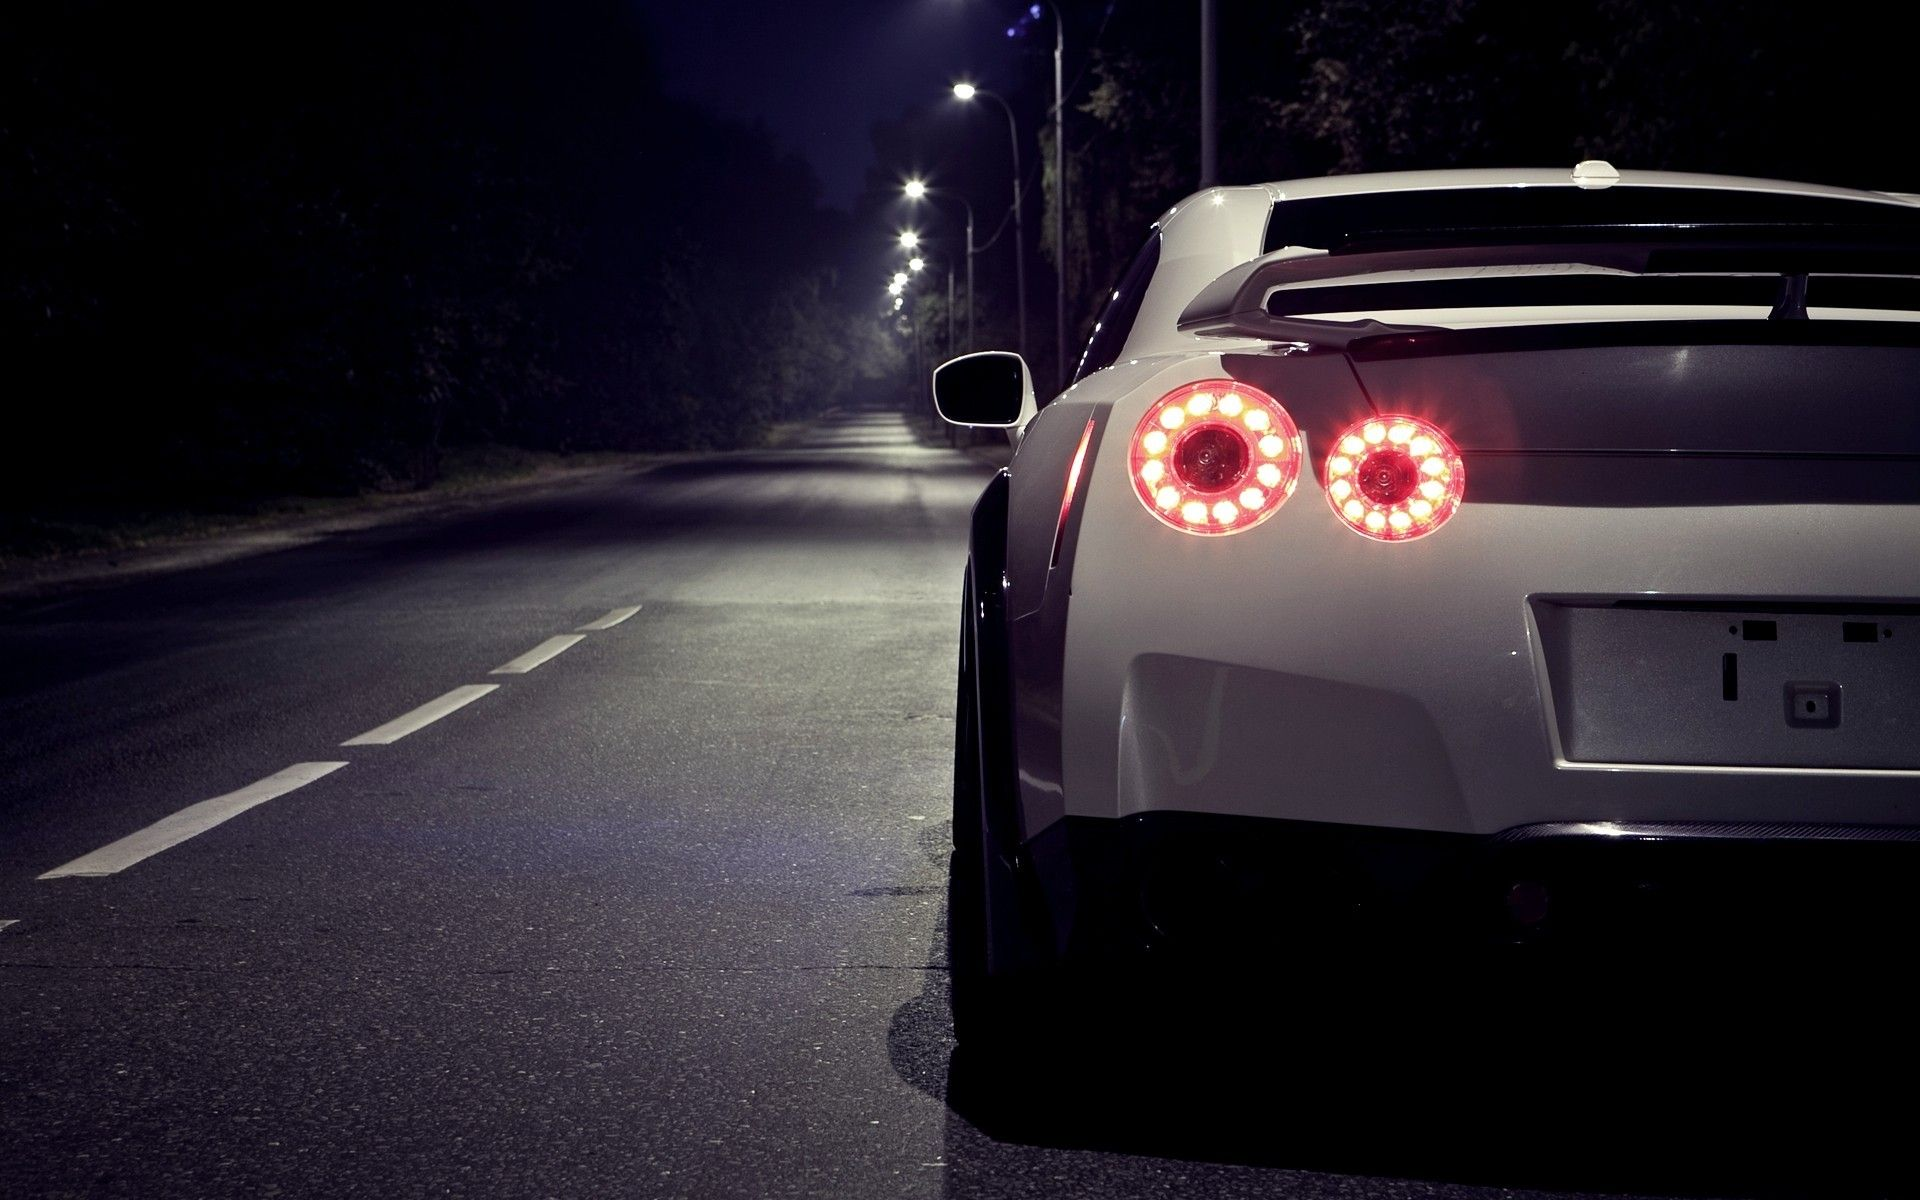 coolest gtr wallpapers - photo #26